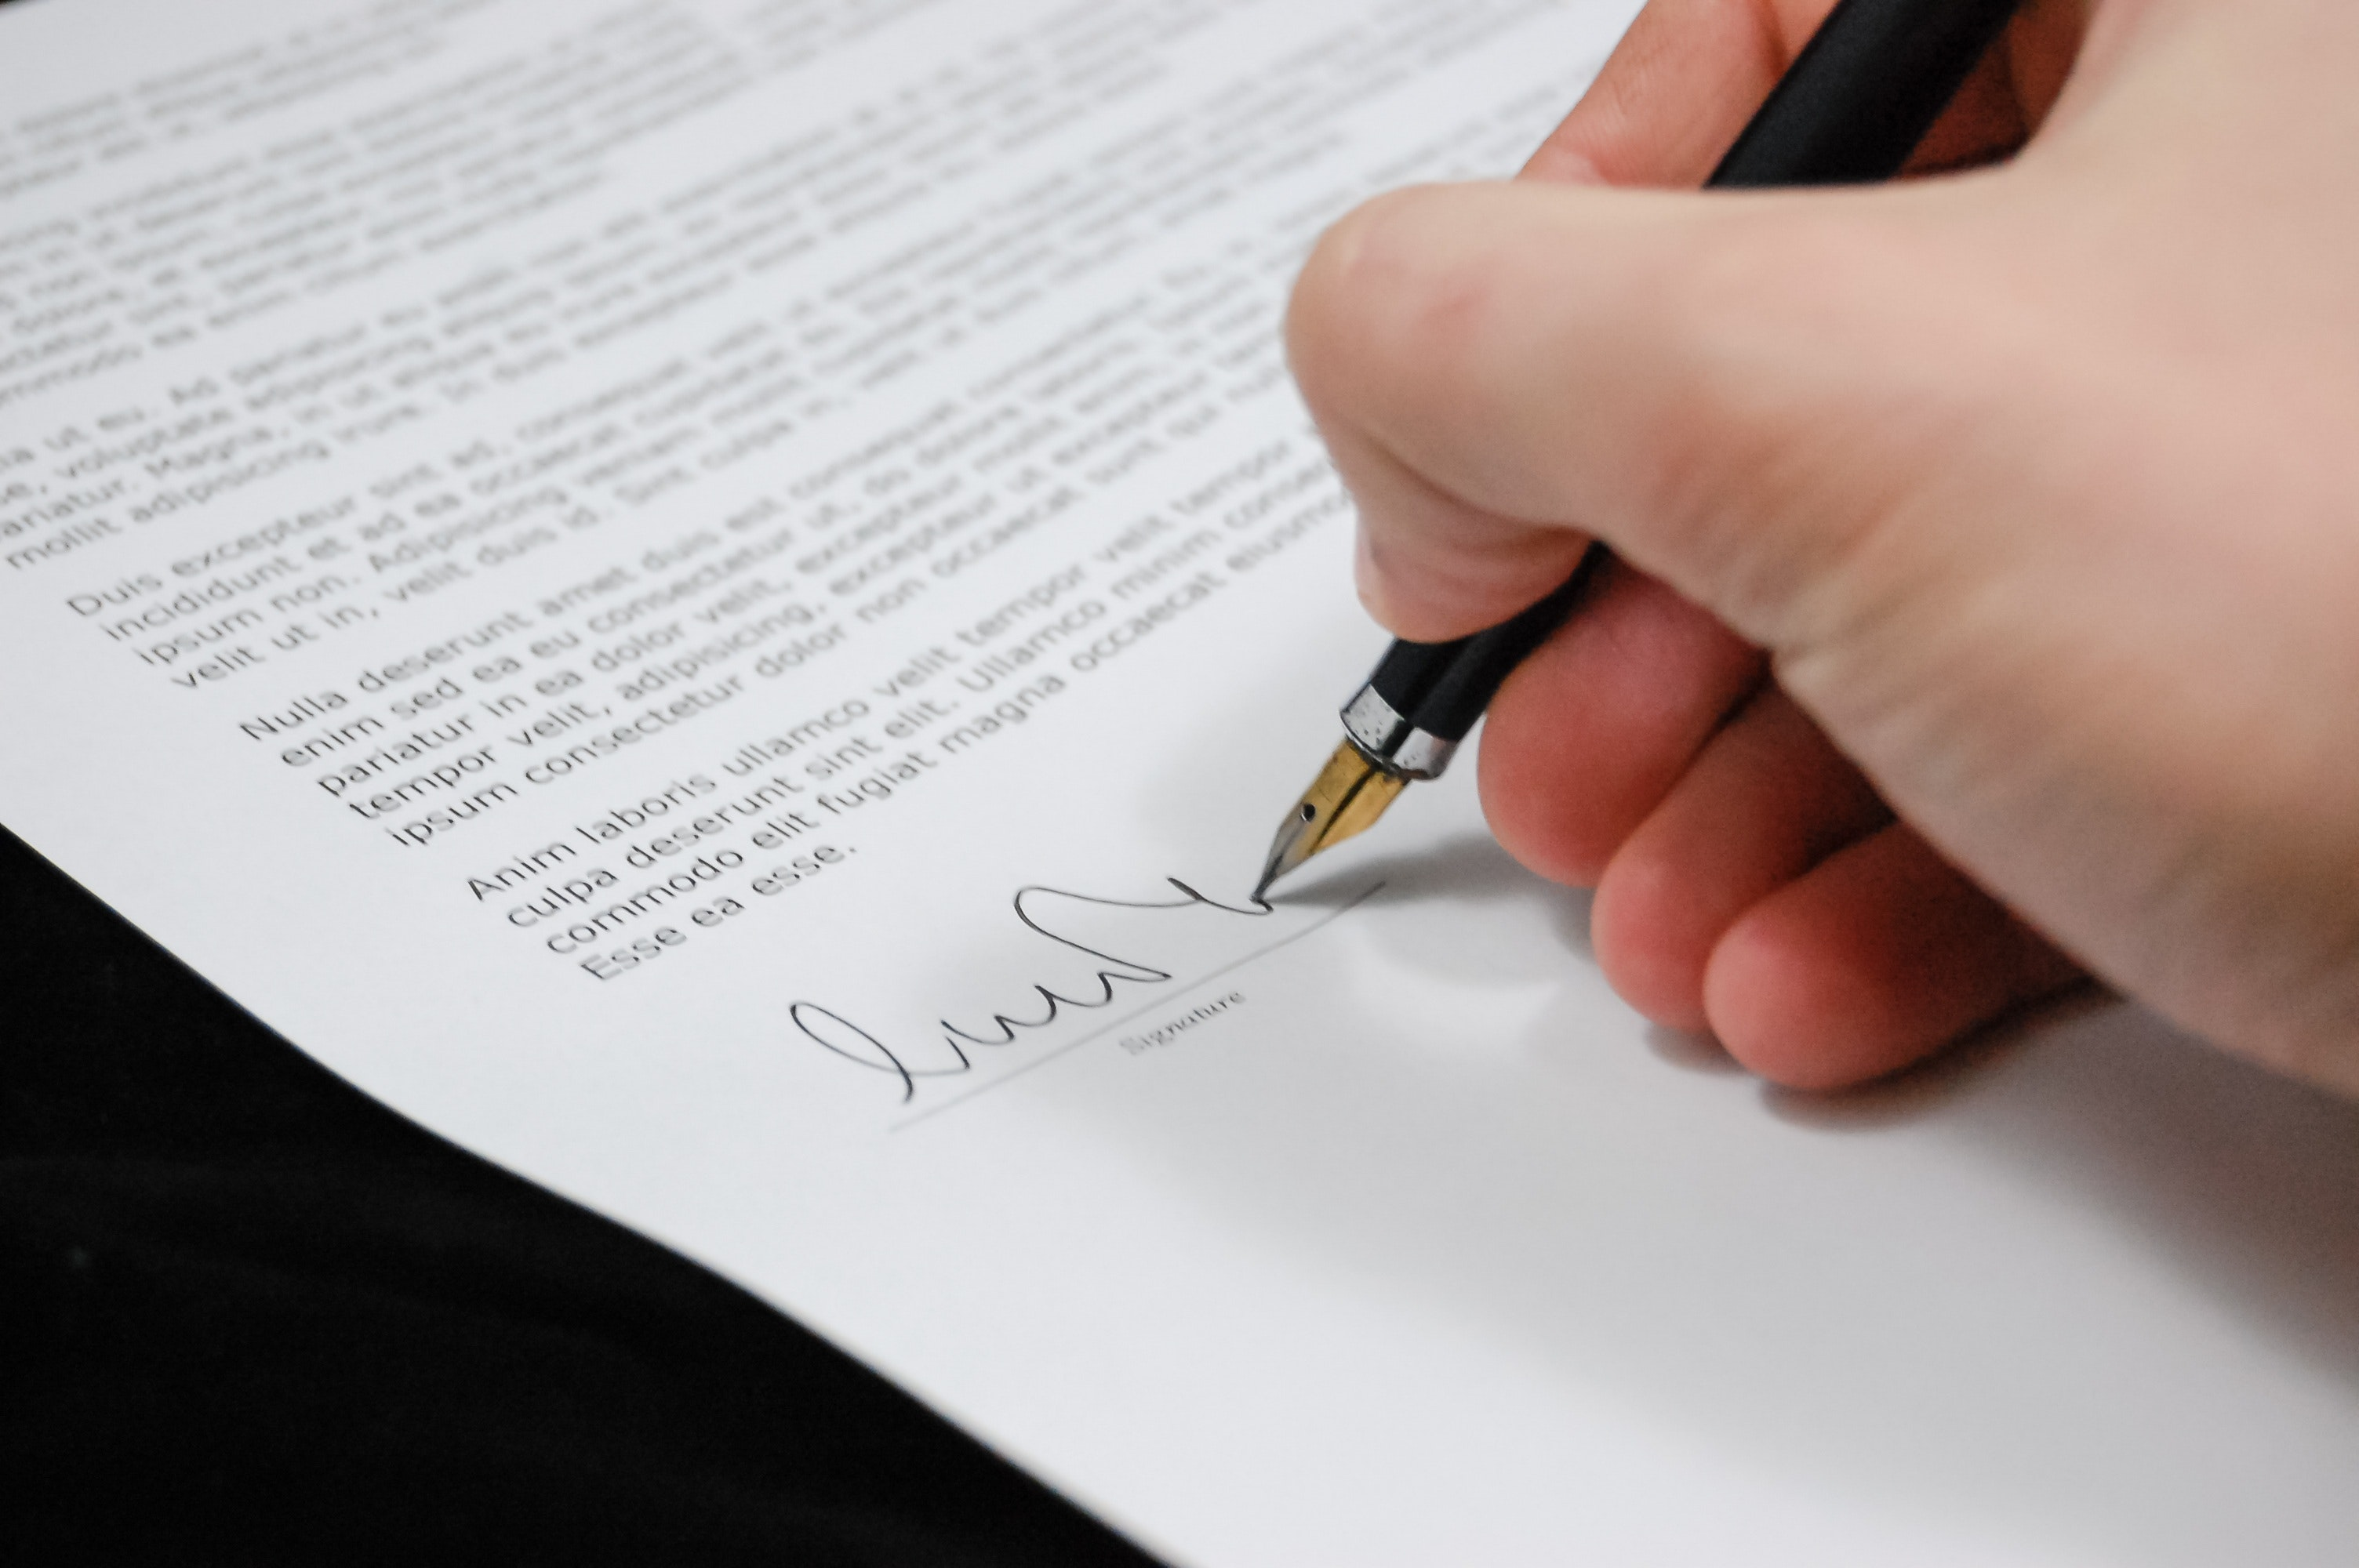 contracts can be digitized